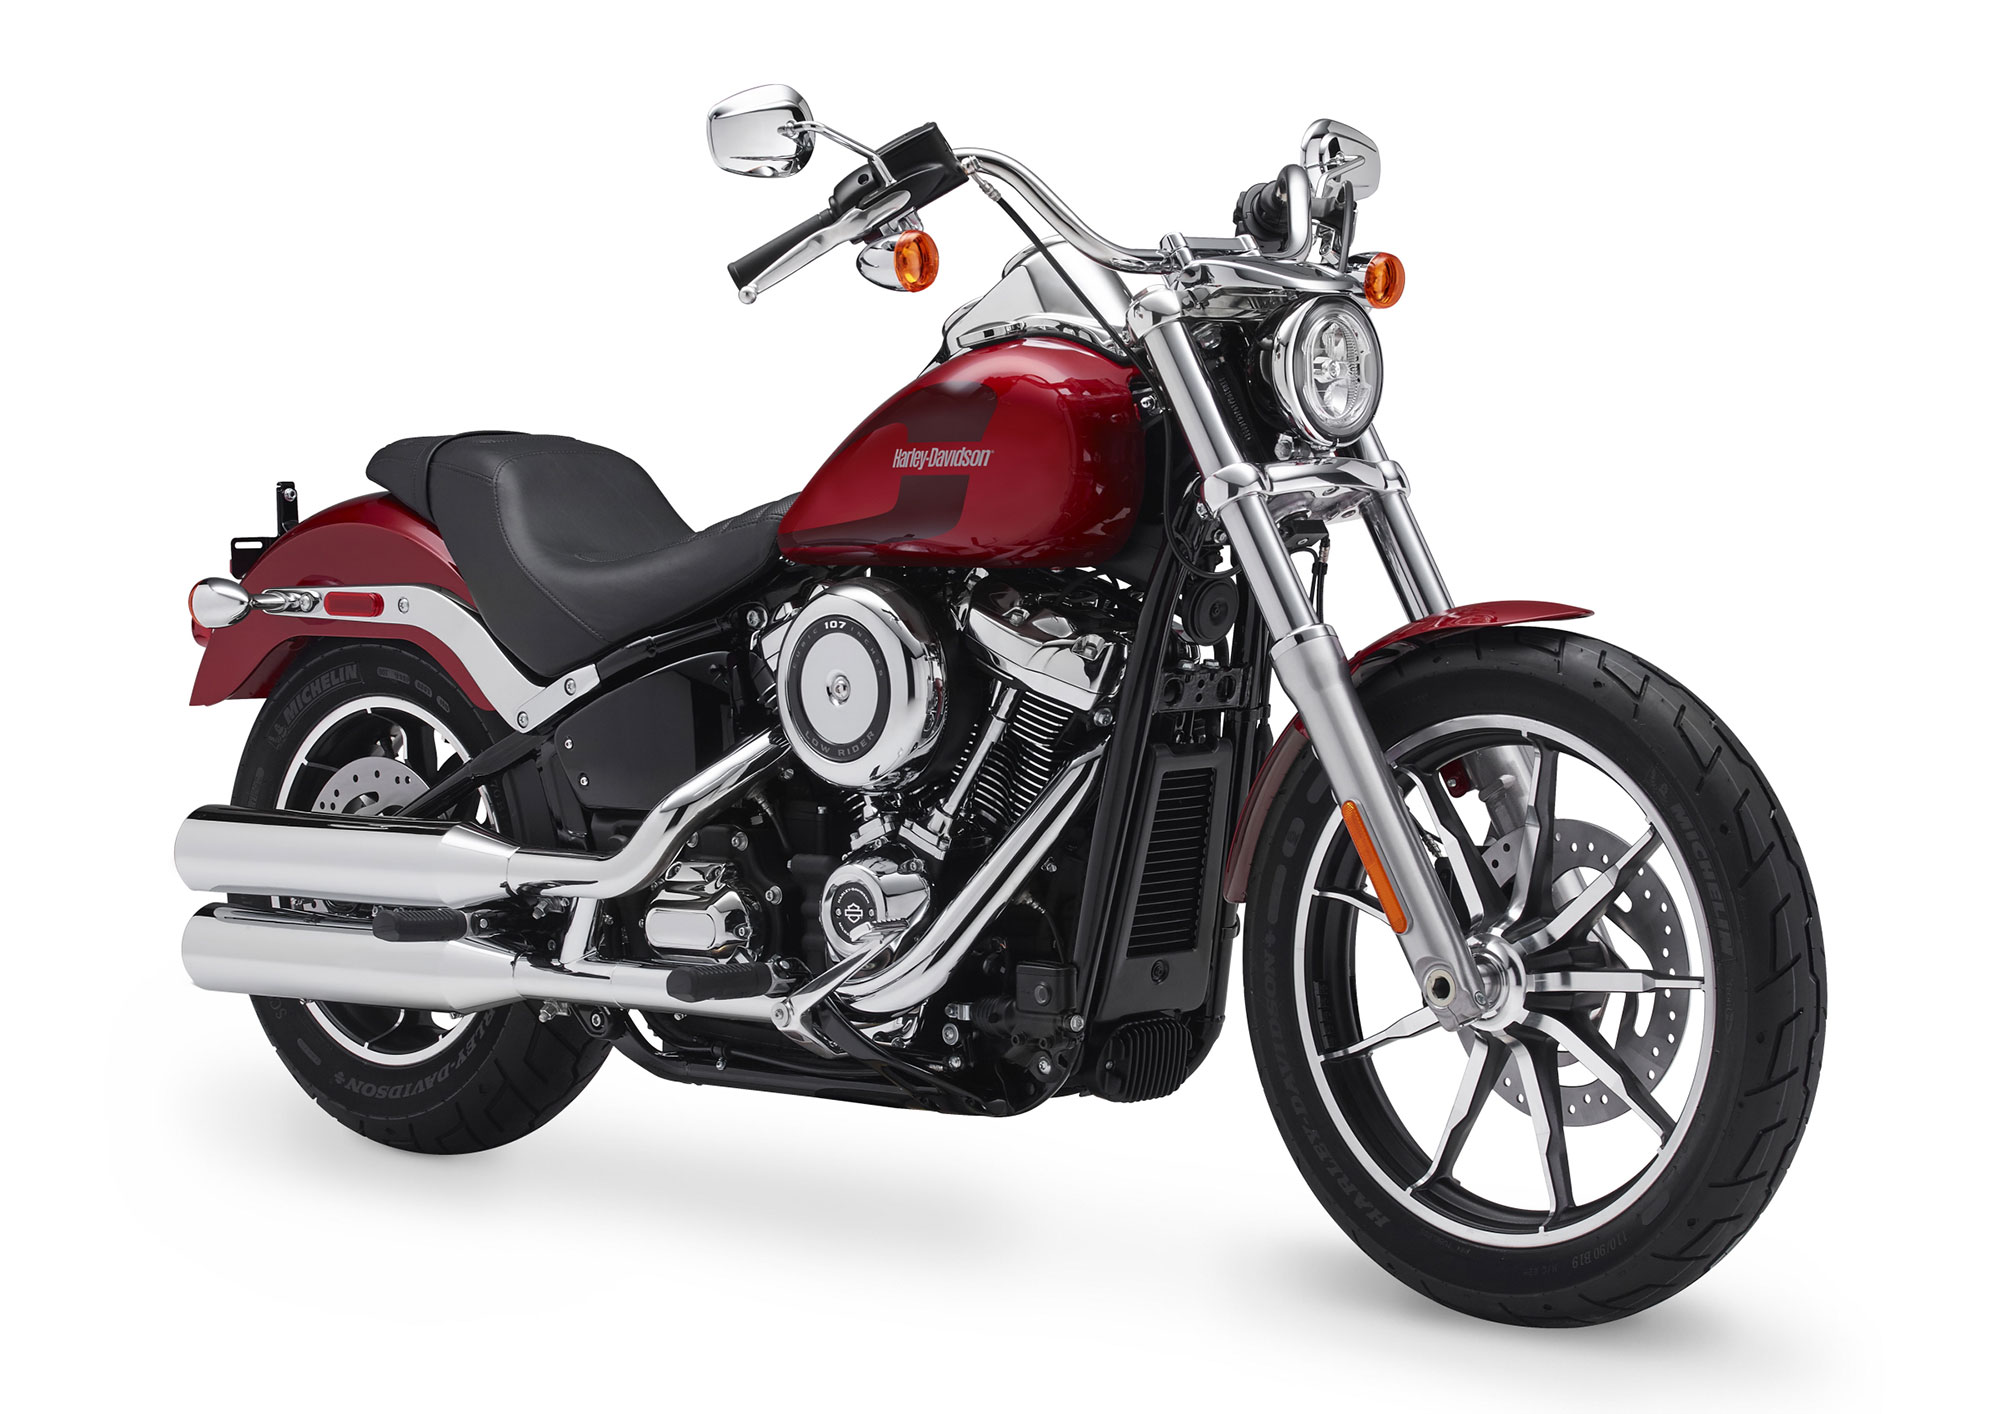 Harley-Davidson tries to regain its coolness factor